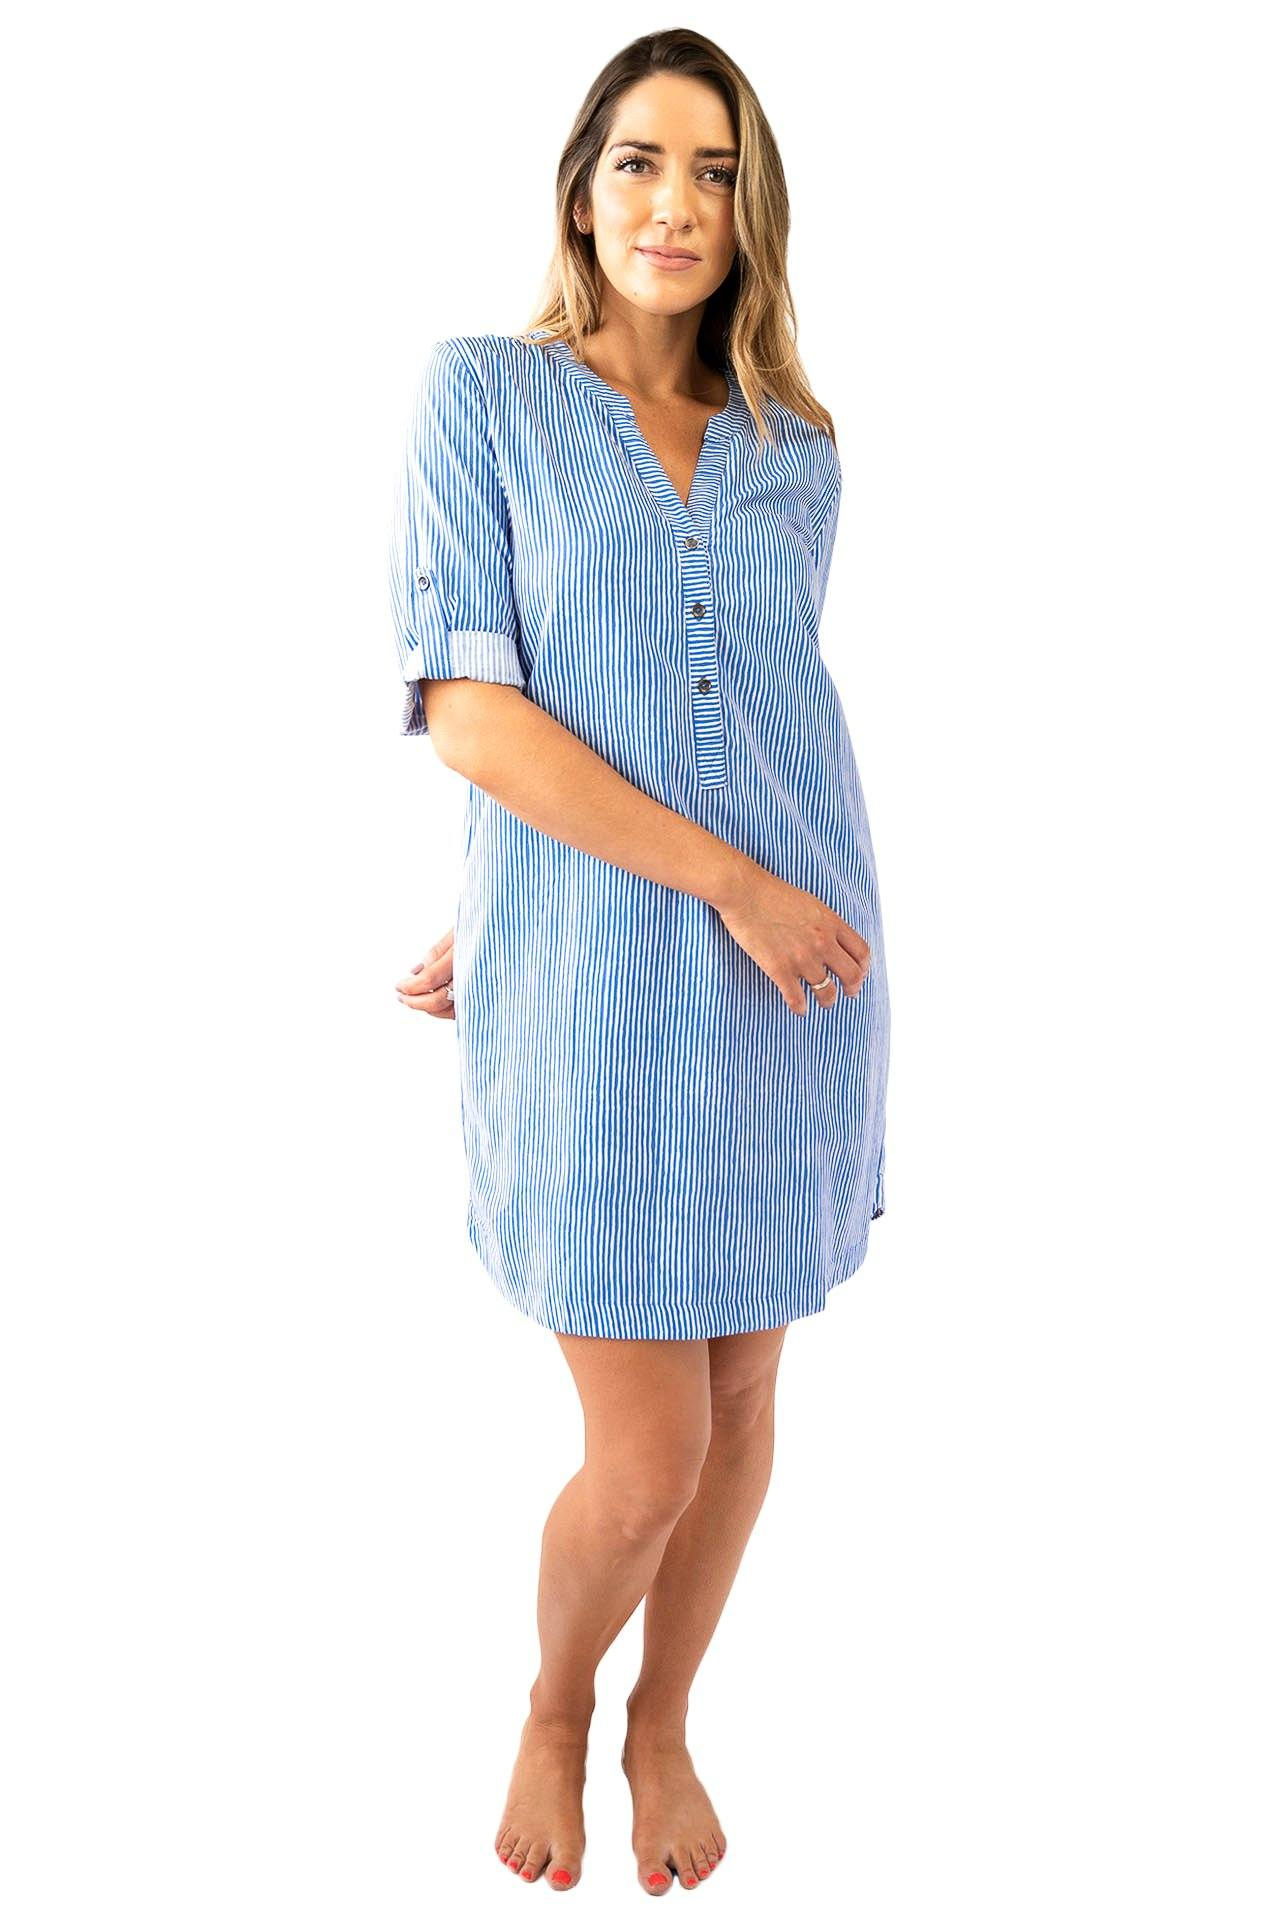 Sally Shirt Dress Stripes DRESS LOVE LILY XS Cobalt